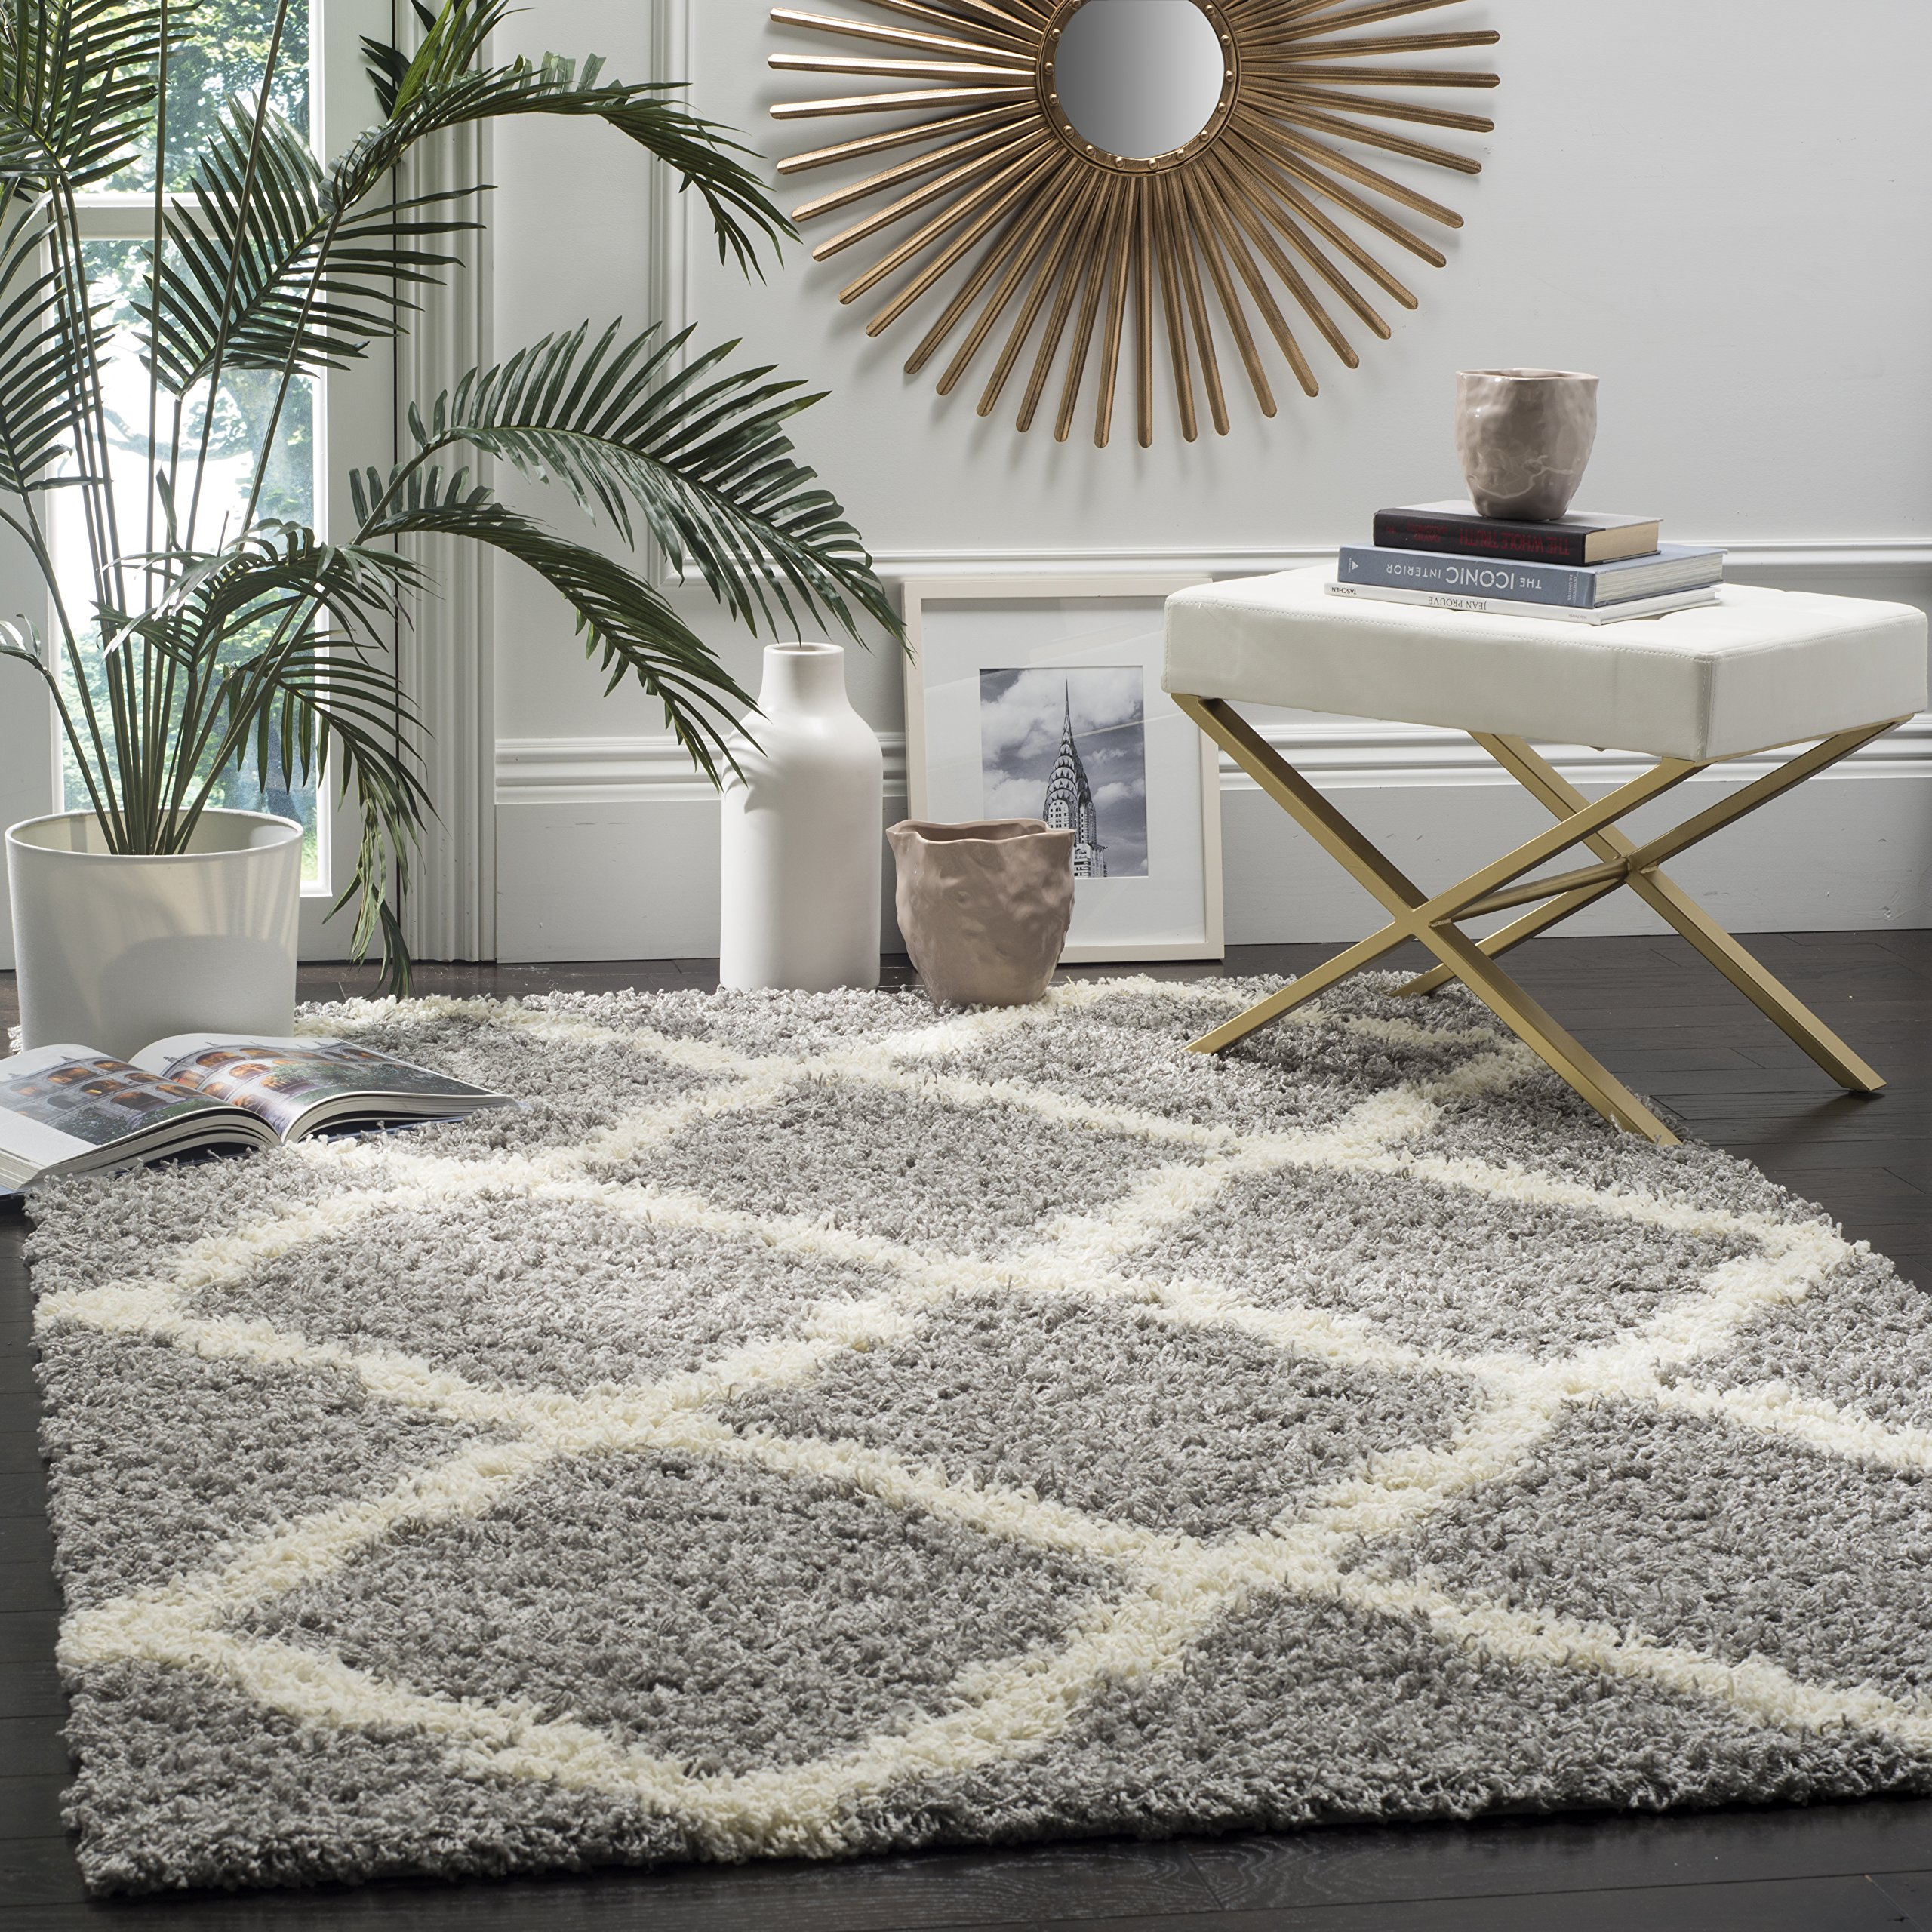 Safavieh Dallas Shag Collection SGD257G Grey and Ivory Area Rug, 8 feet by 10 feet (8' x 10') by Safavieh